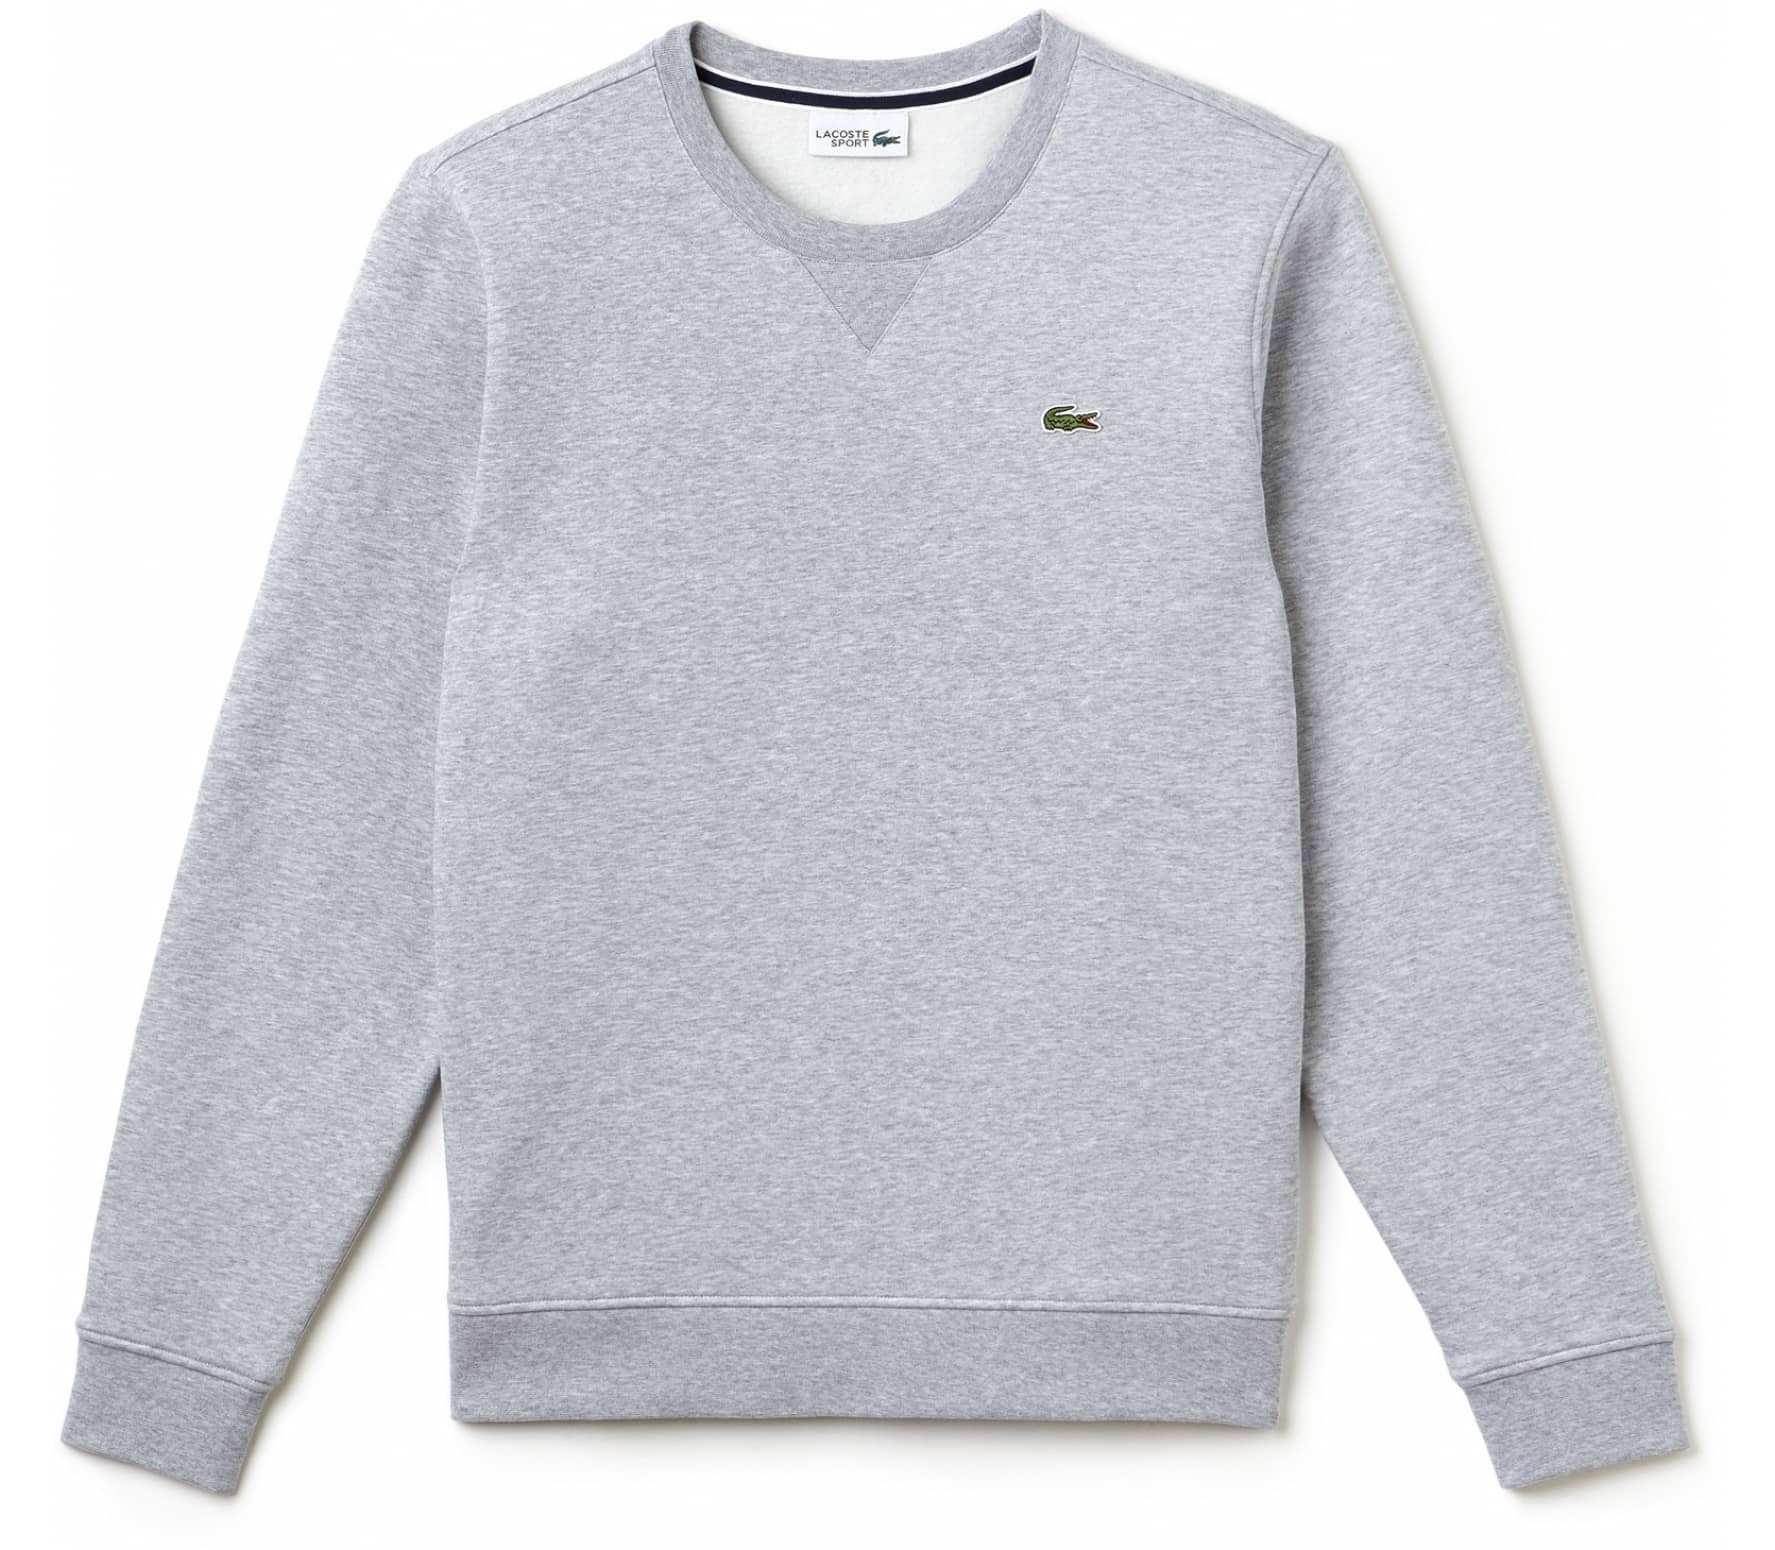 7e530a385509 Lacoste - sweatshirt men s tennis sweatshirt (grey) - buy it at the ...